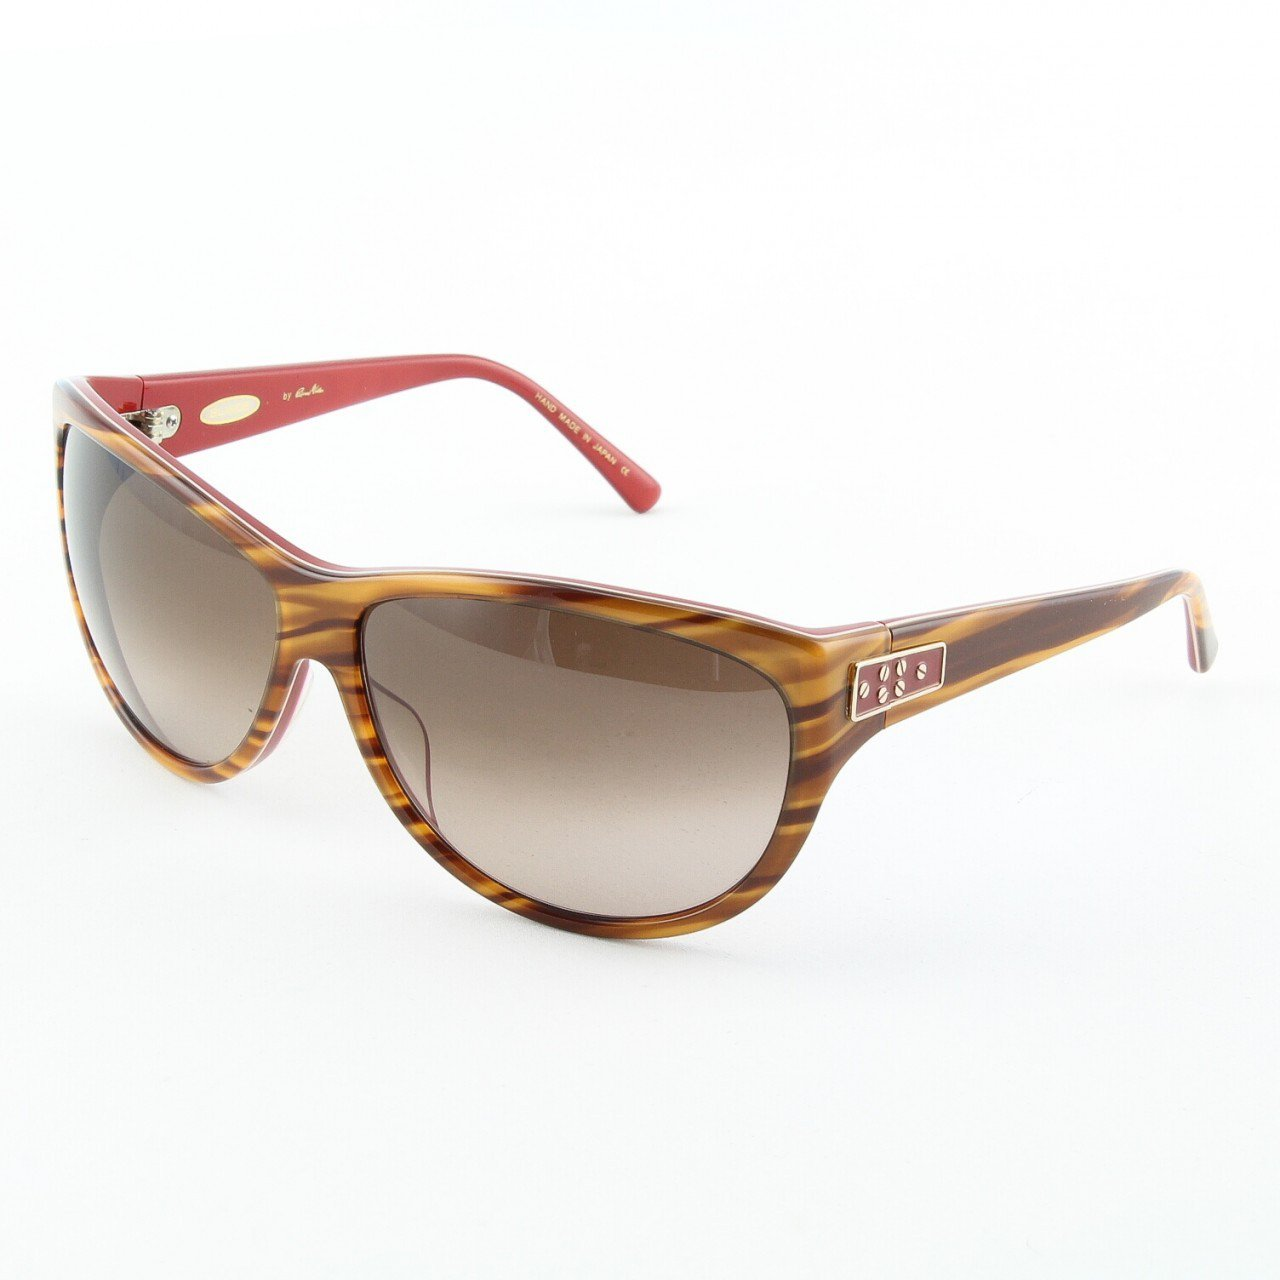 Blinde Lips Like Sugar Women's Sunglasses Col. Coral Tortoise with Brown Gradient Lenses